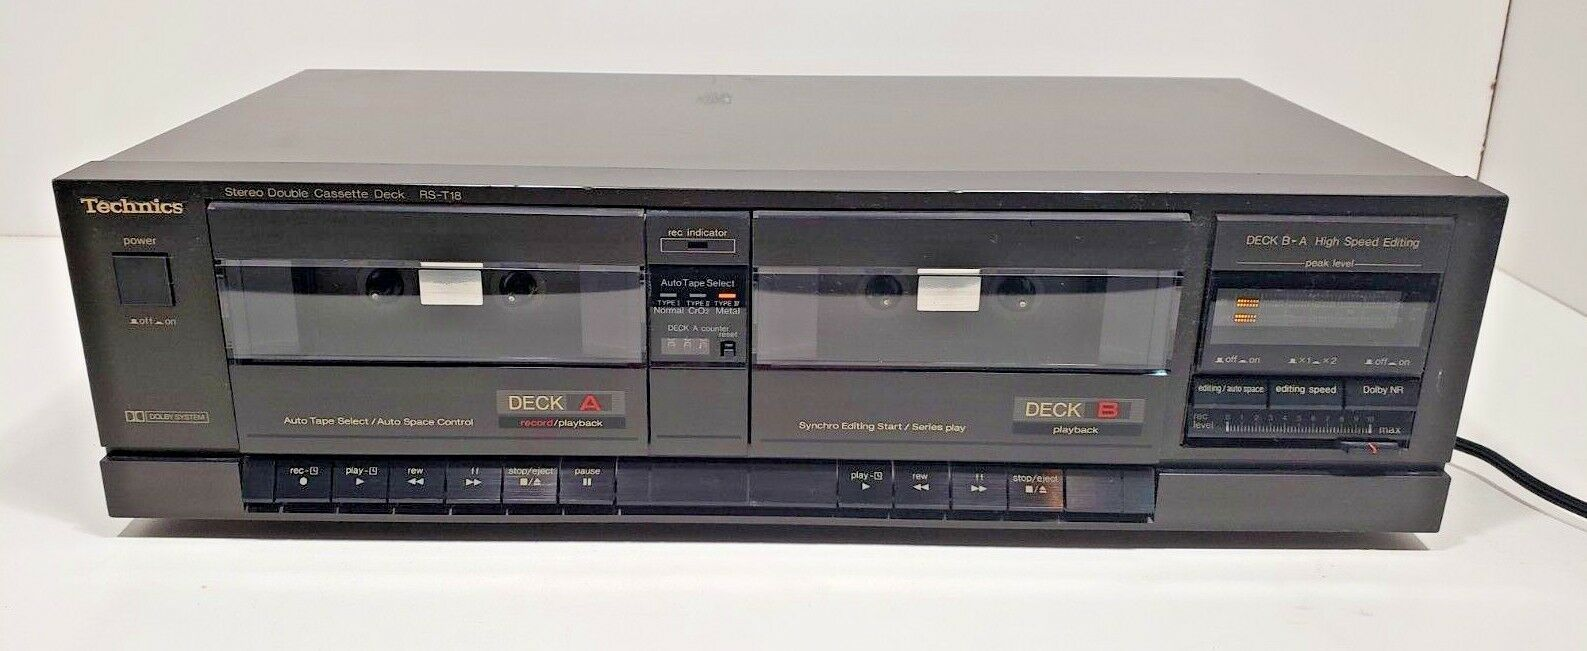 Technics Stereo Double Cassette Deck RS-T18...Tested